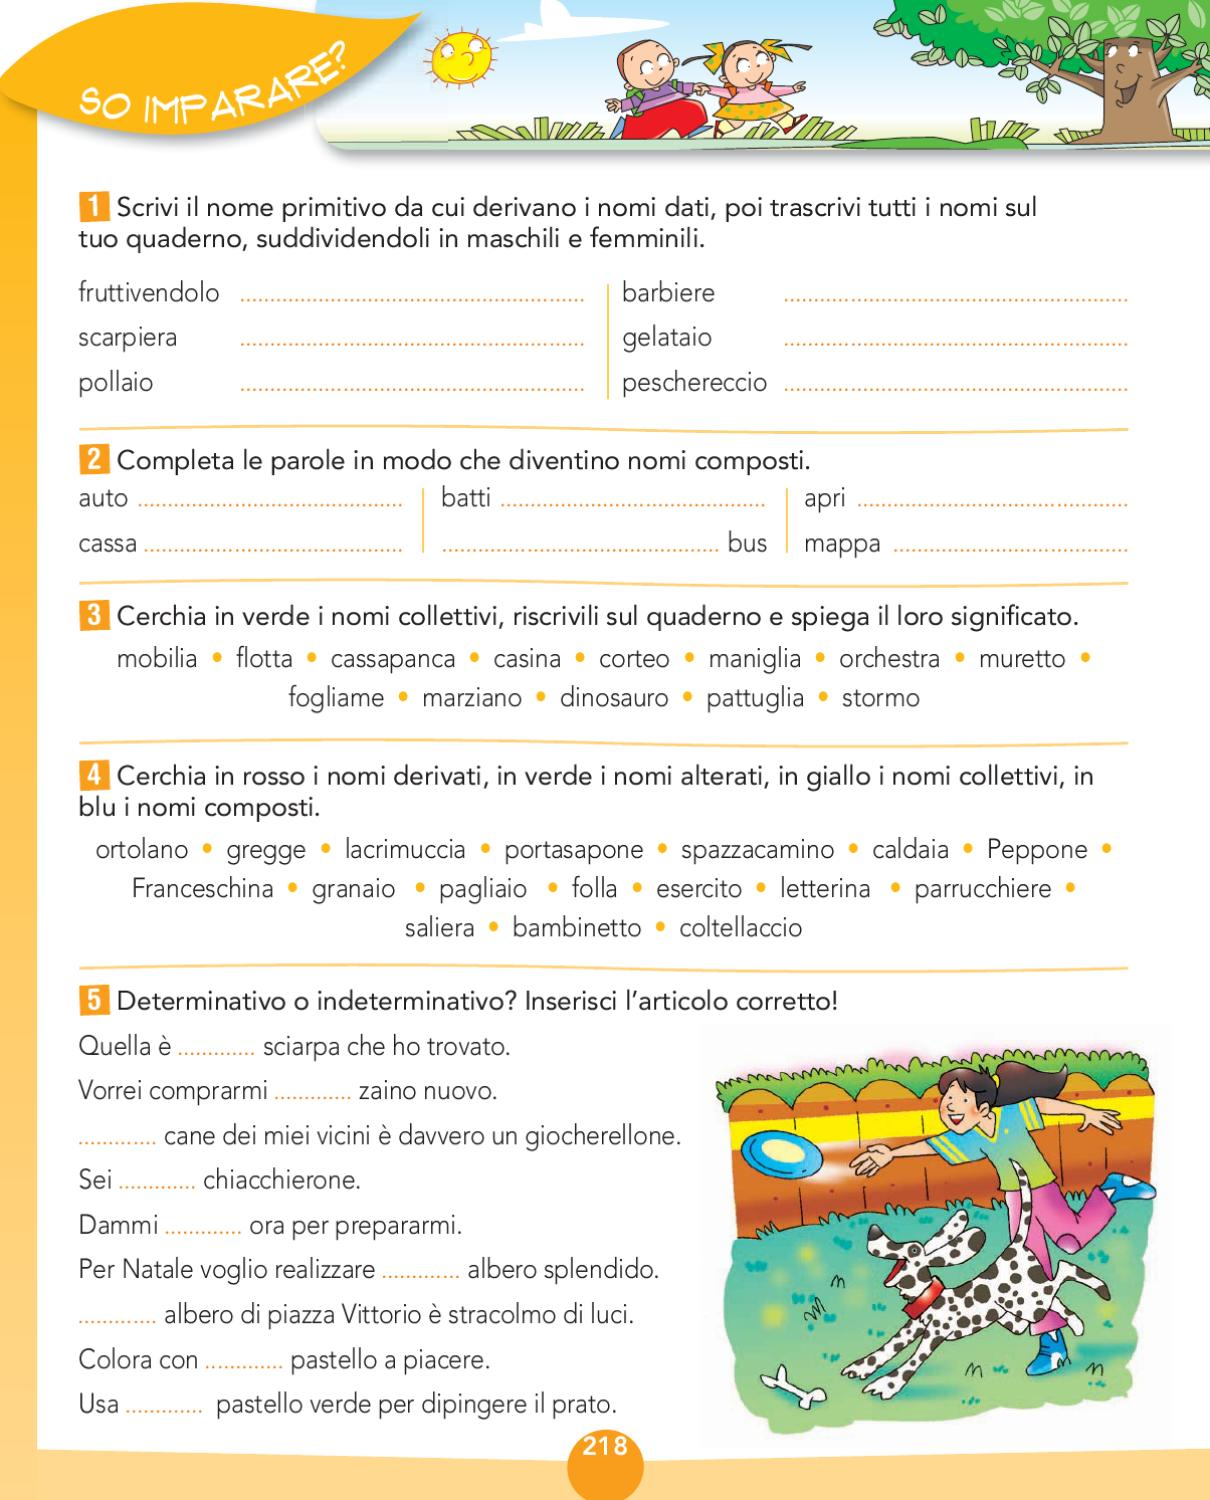 Olmo 3a letture by elvira ussia issuu for Mobilia significato